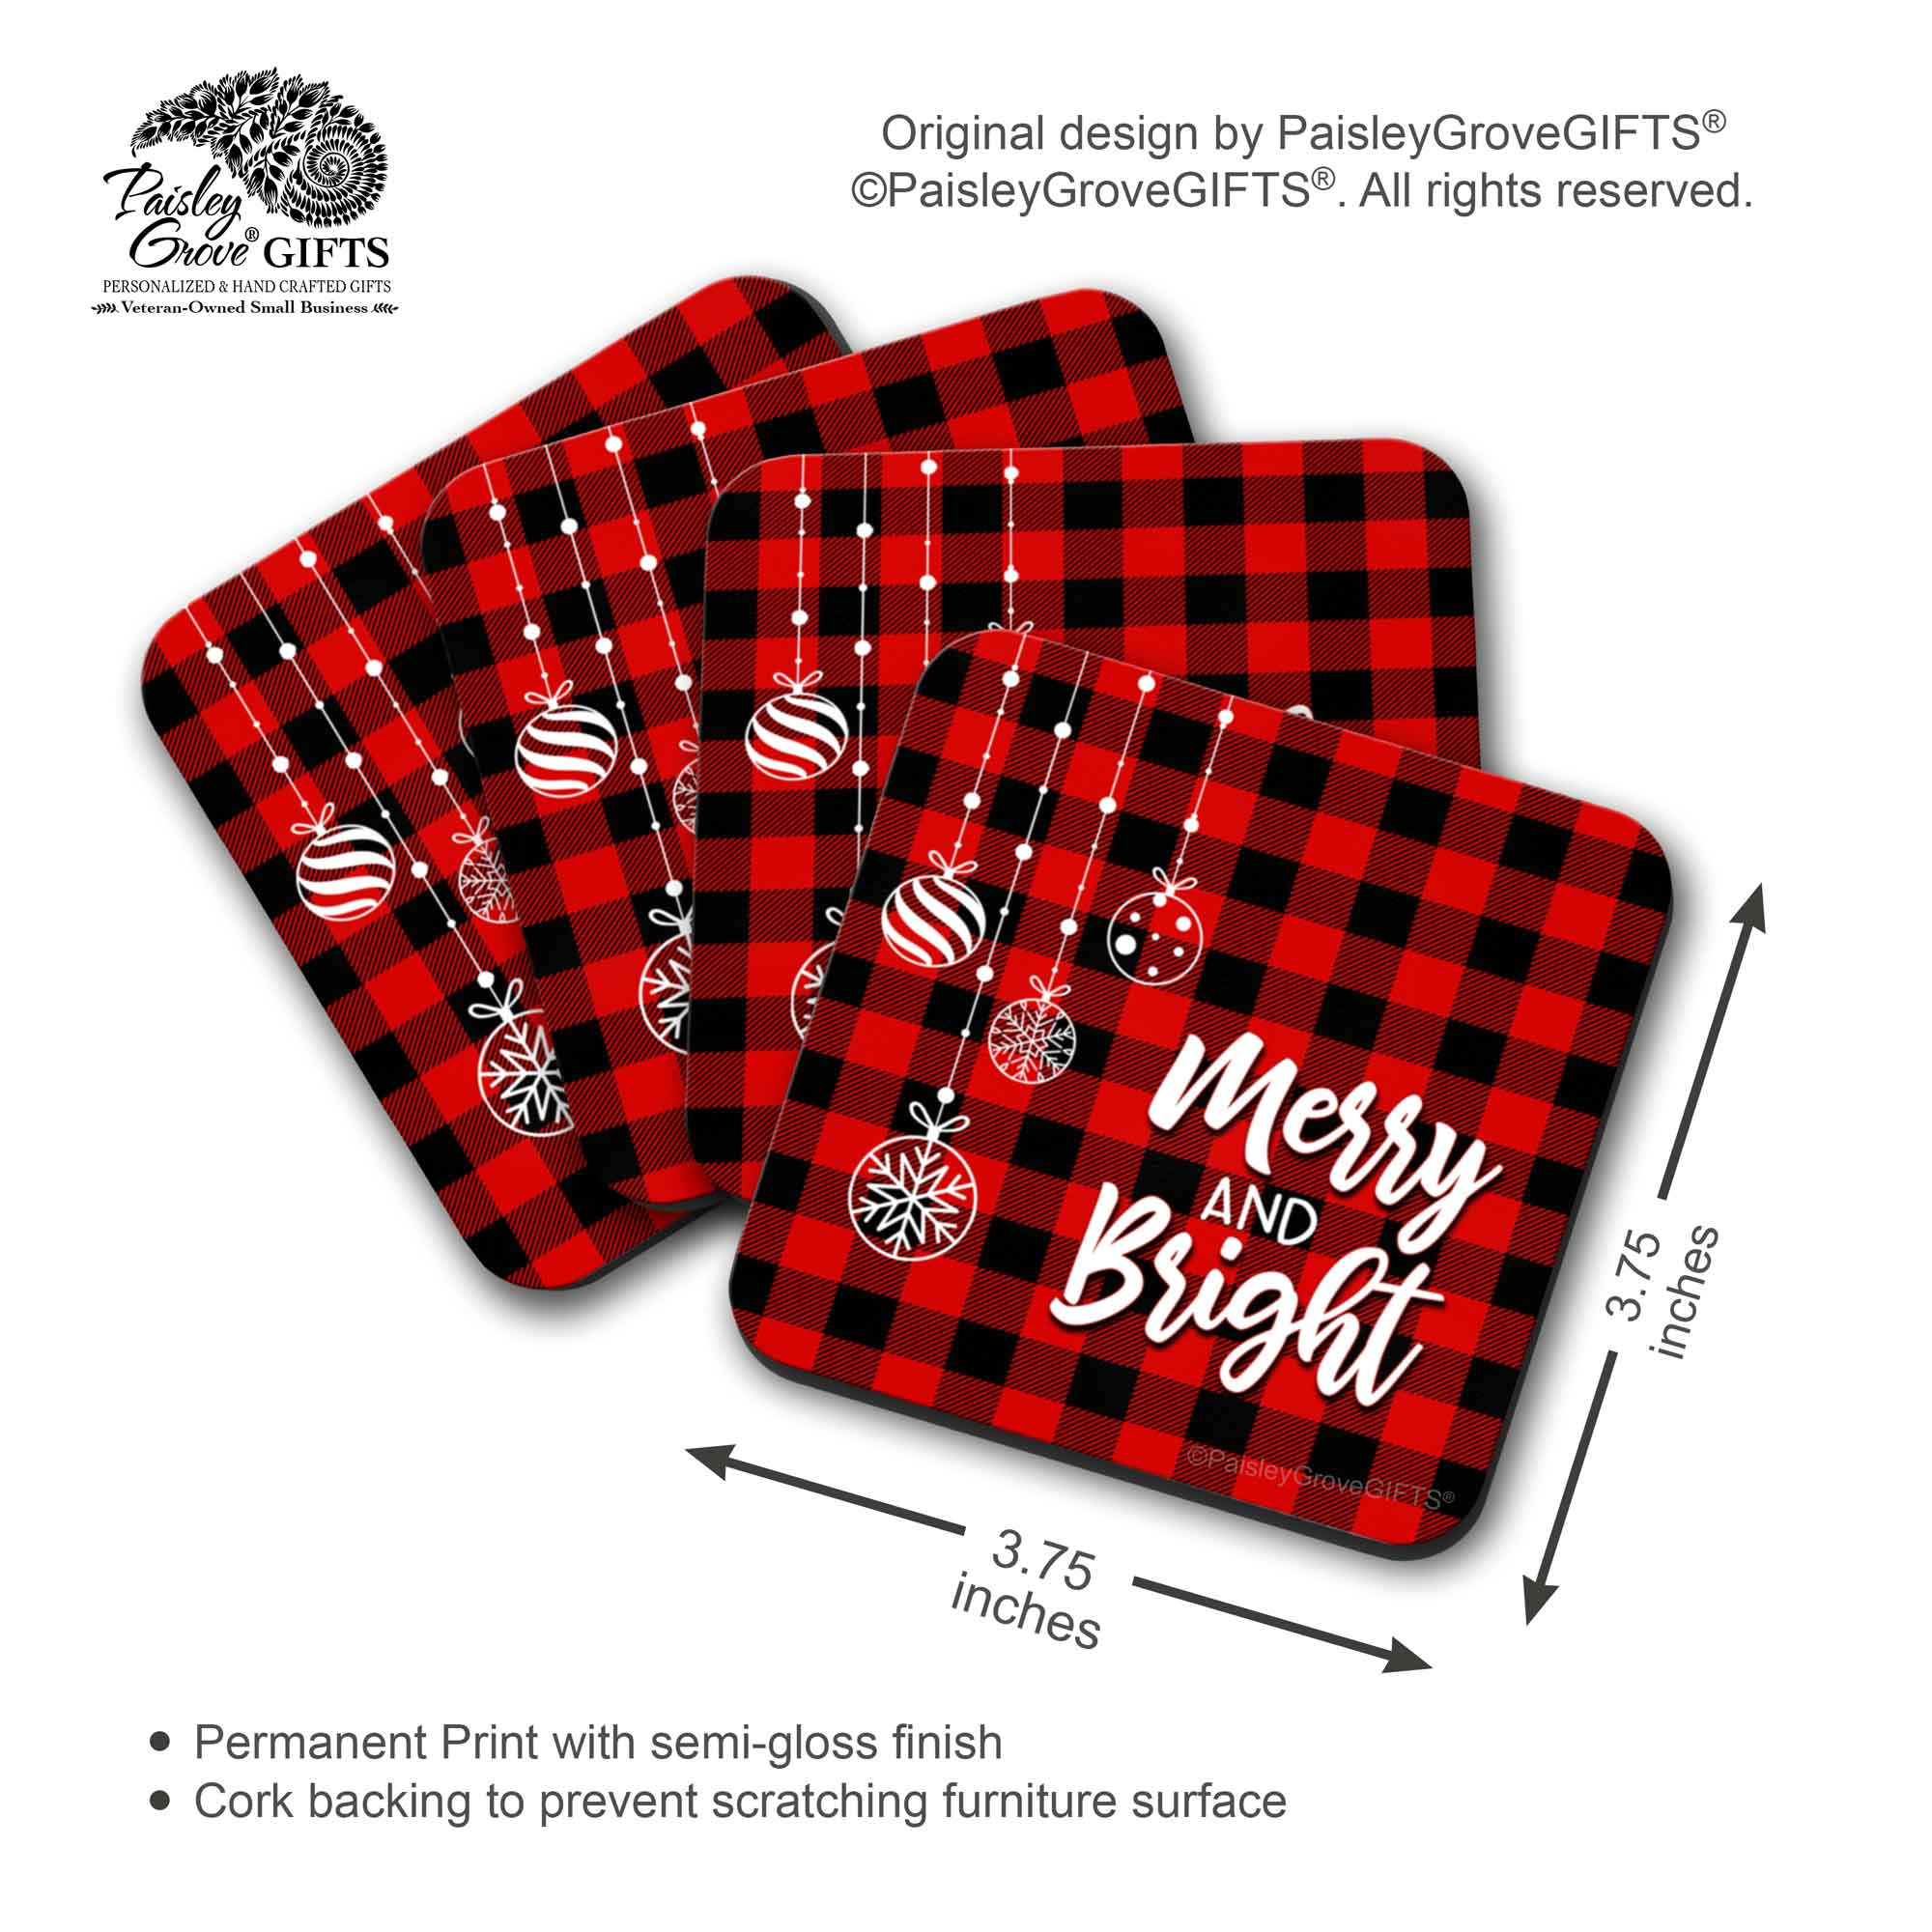 CopyrightPaisleyGroveGIFTS S704b Measurement Information for Christmas Buffalo Check Coasters Baby It's Cold Outside